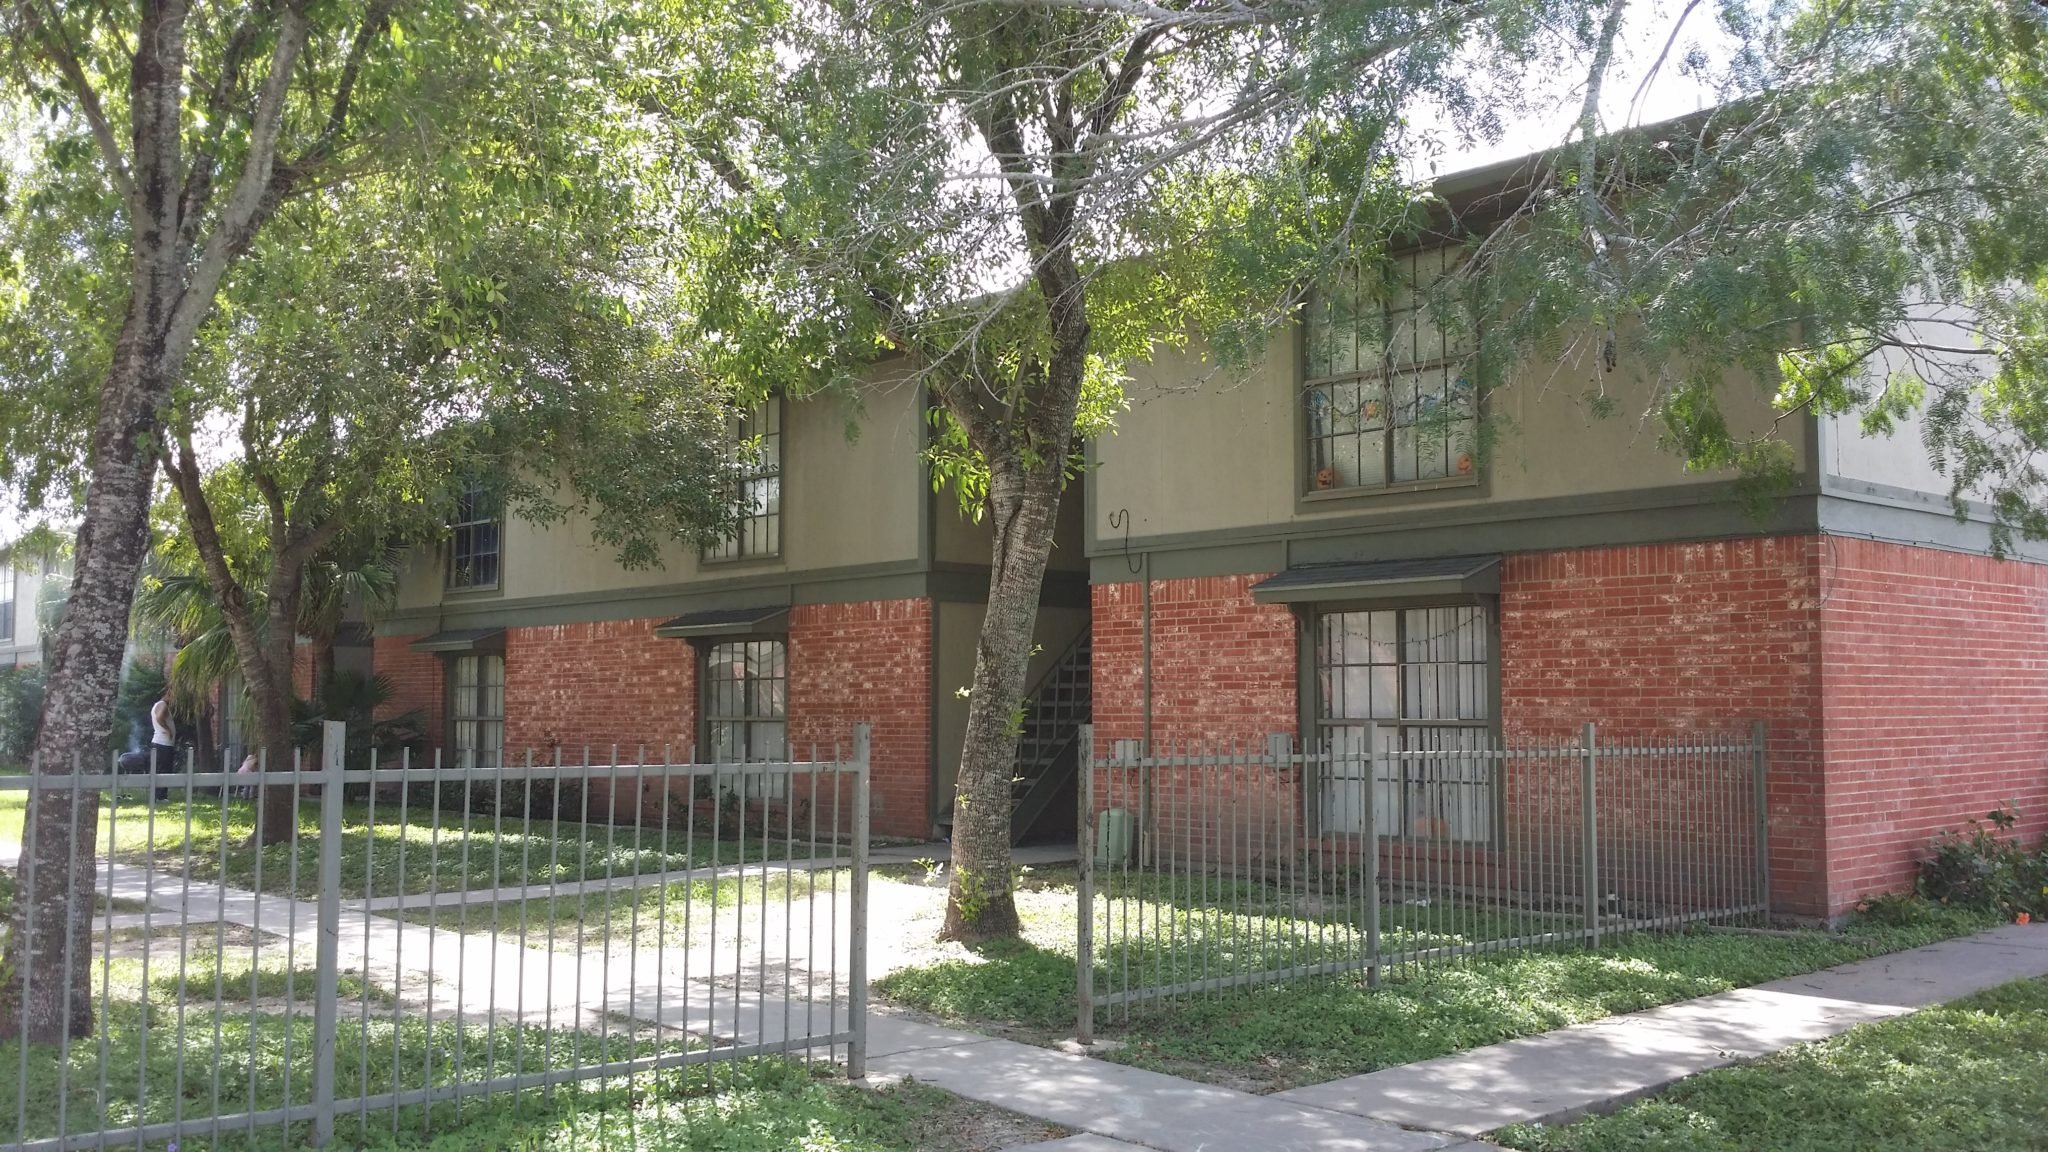 1 Bedroom Apartments In Mcallen Primrose Ave Mcallen Tx 78504 Rentals Mcallen Tx